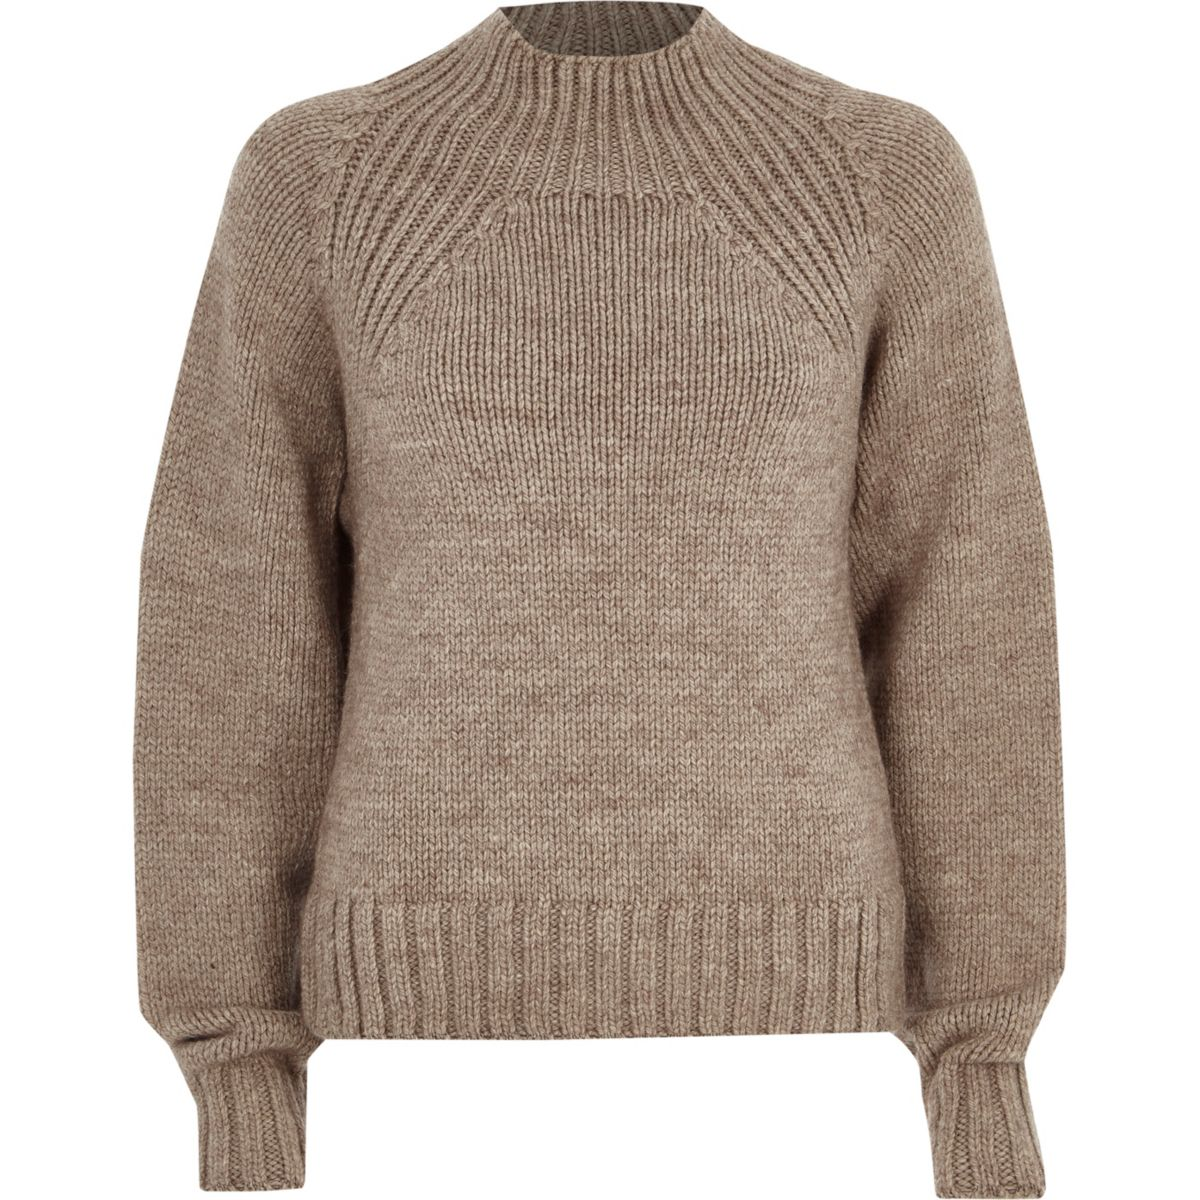 Mink brown high neck chunky knit sweater